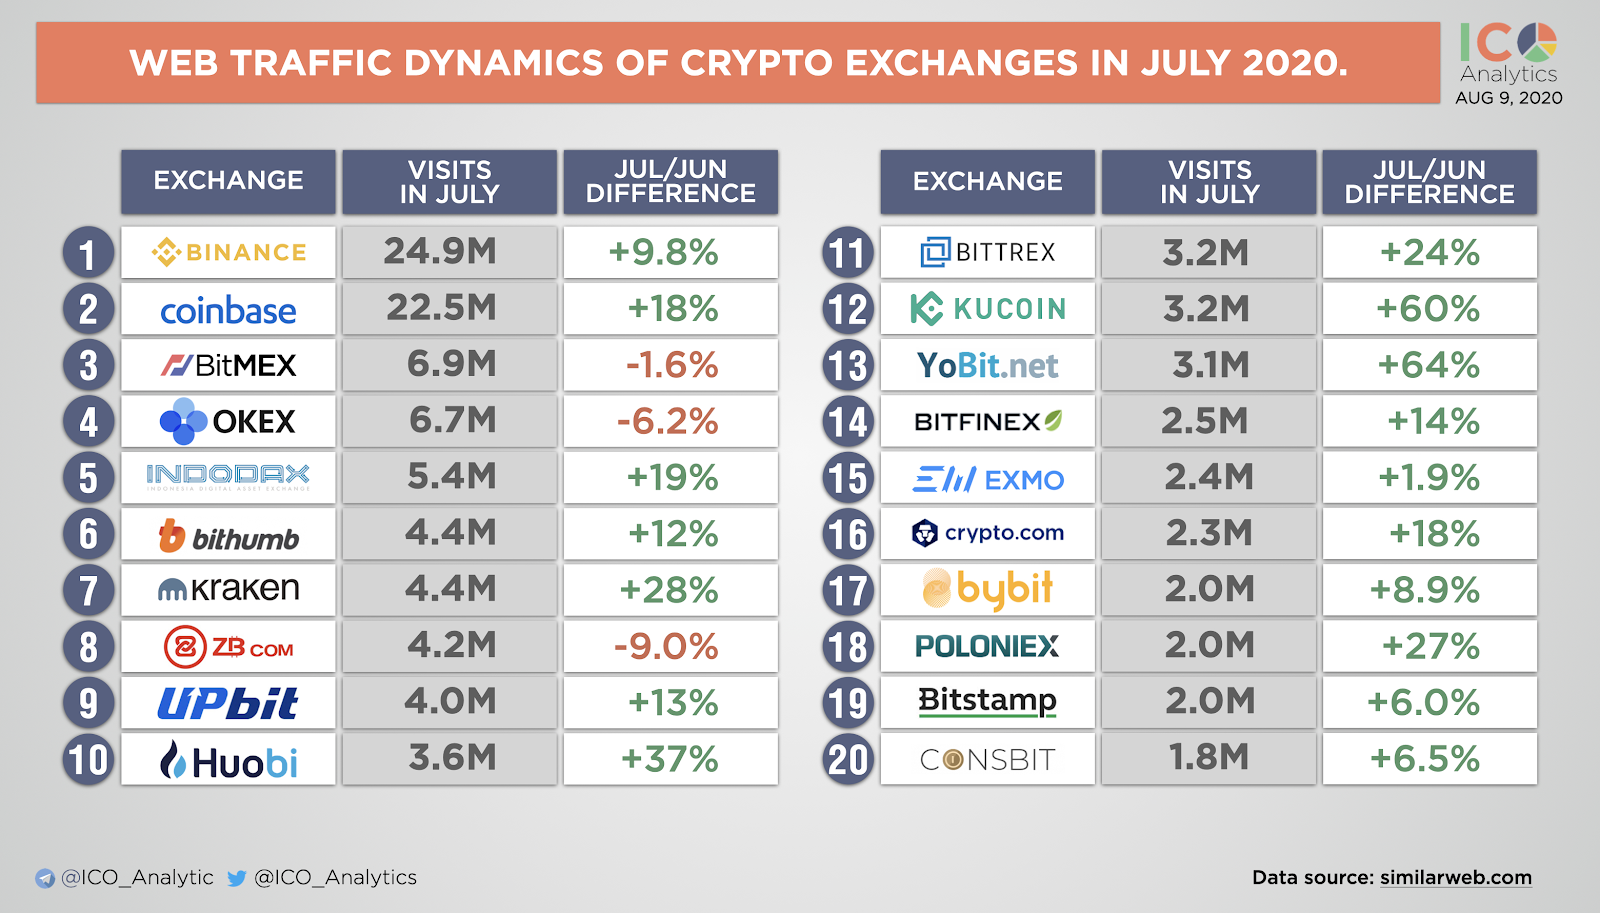 Web trade dynamics of crypto exchanges in Jul 2020